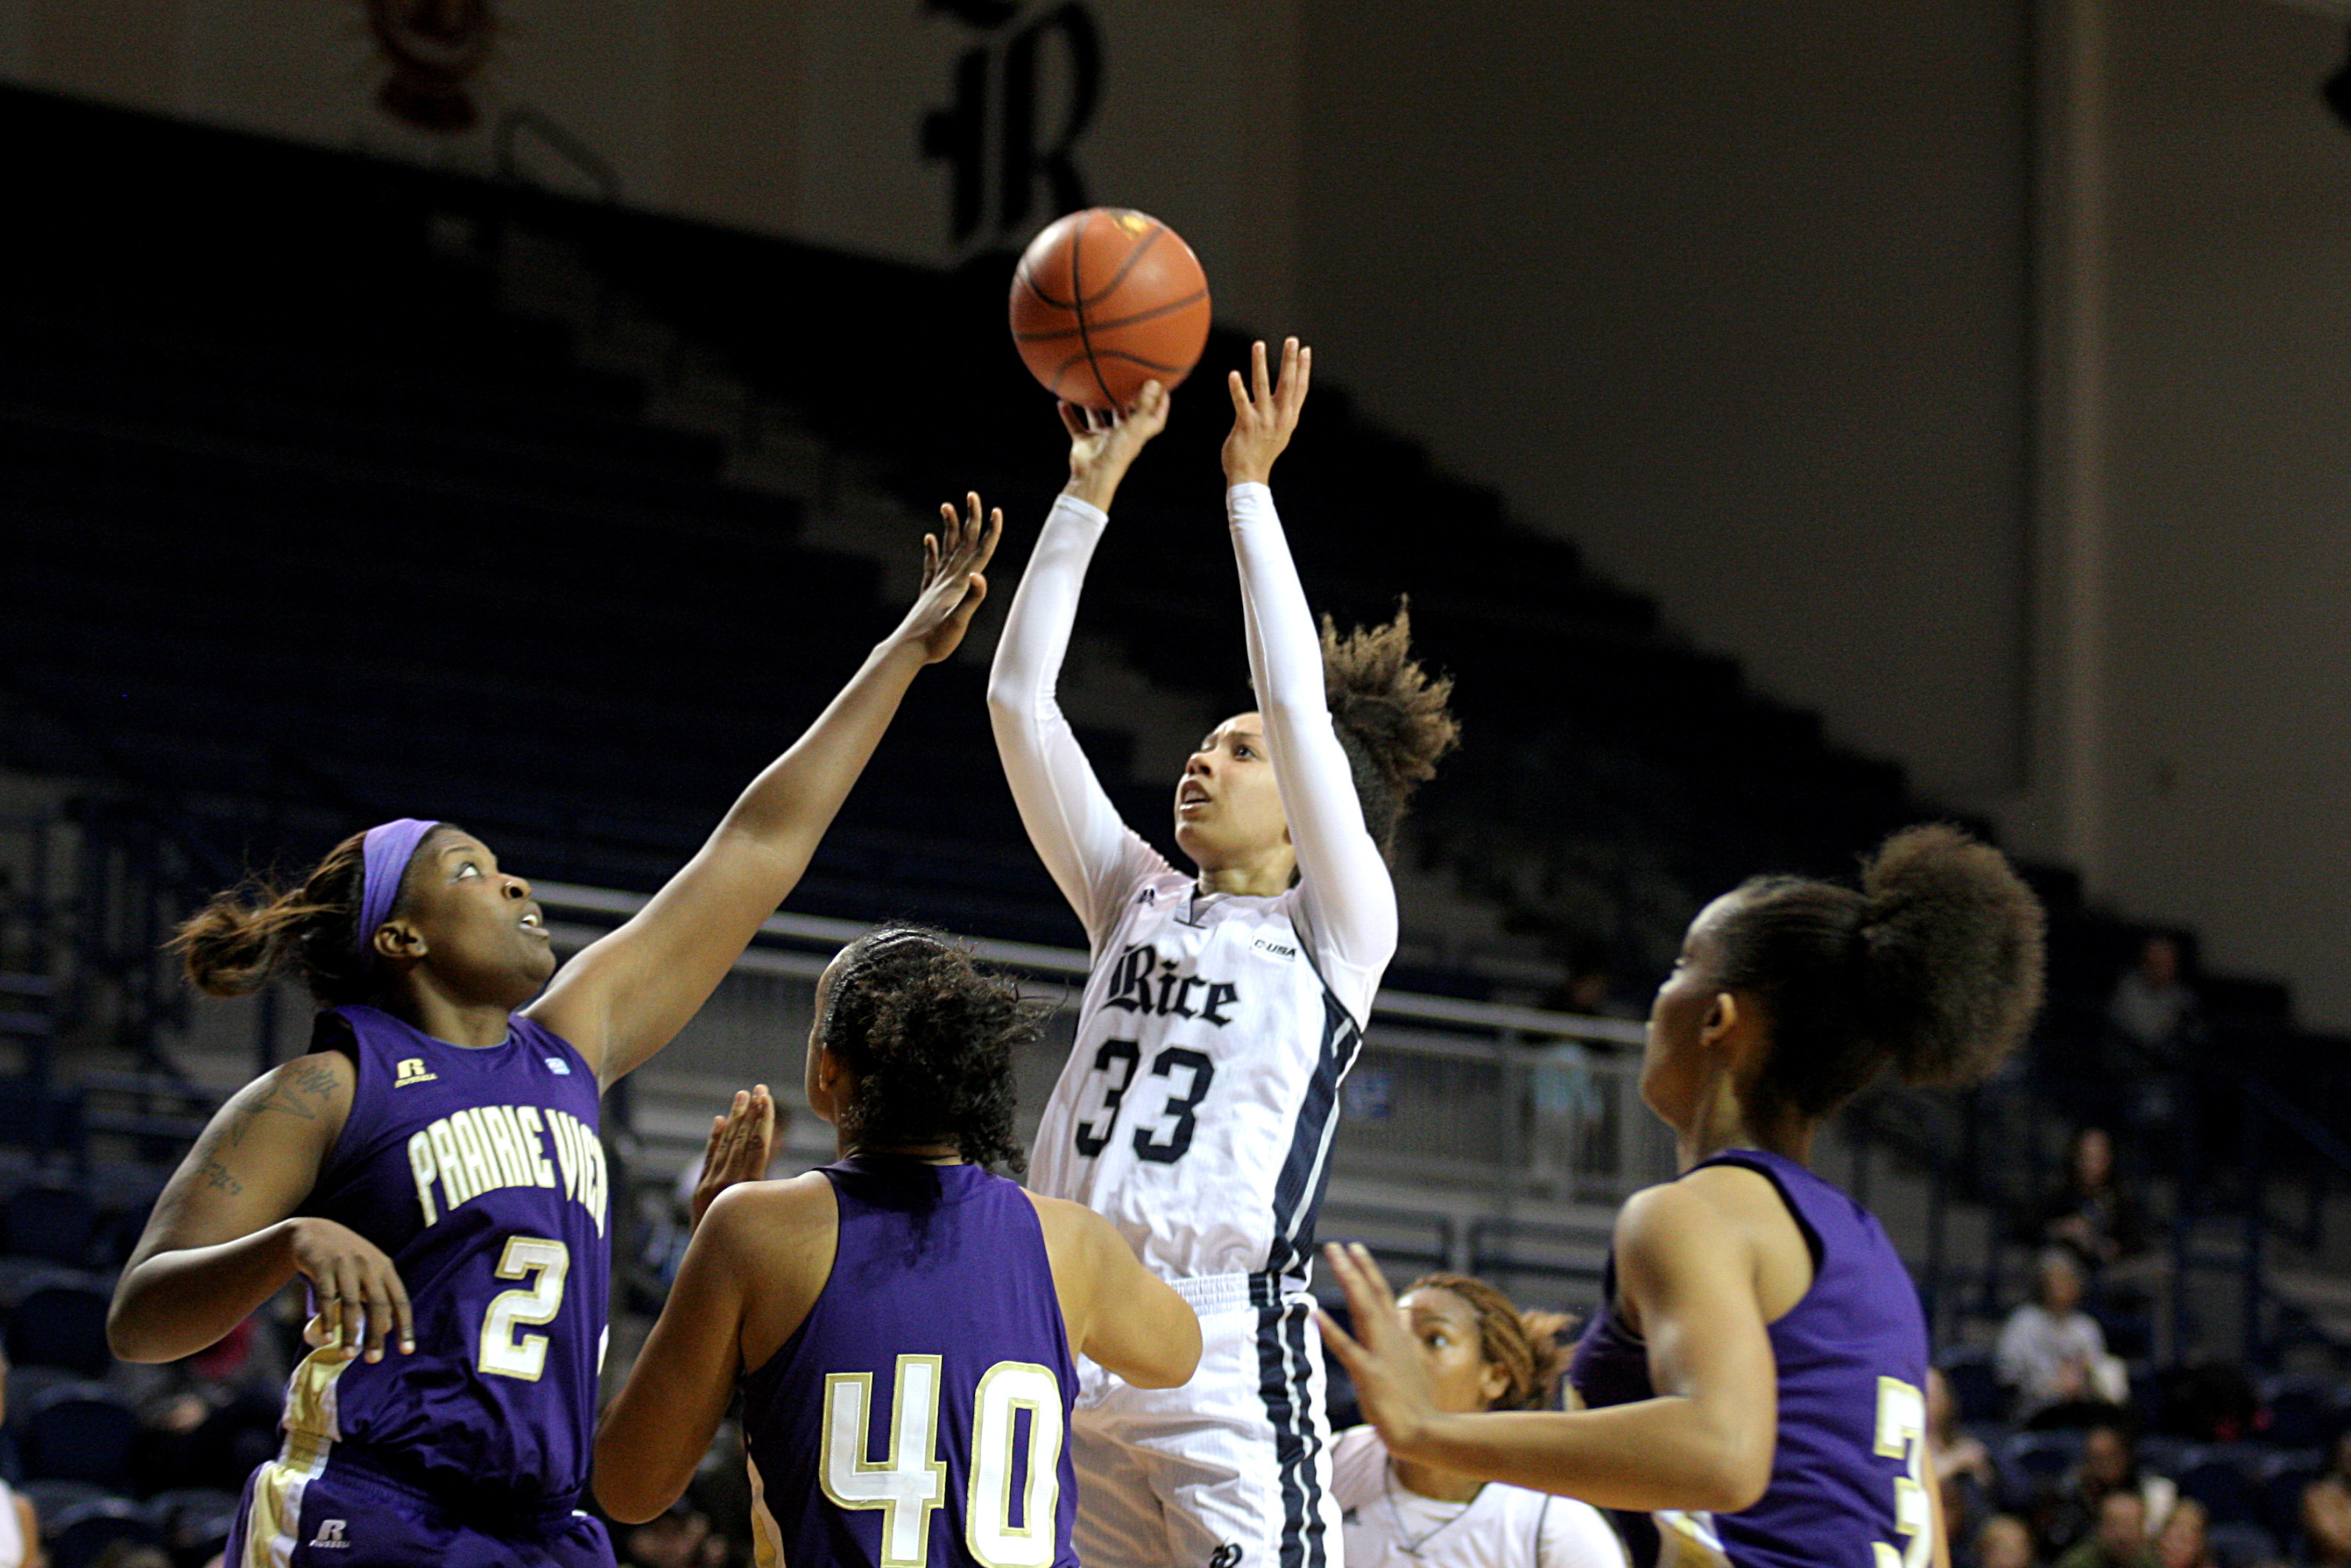 Jasmine Goodwine registered her first career double-double in Friday's 70-58 win over Prairie View.